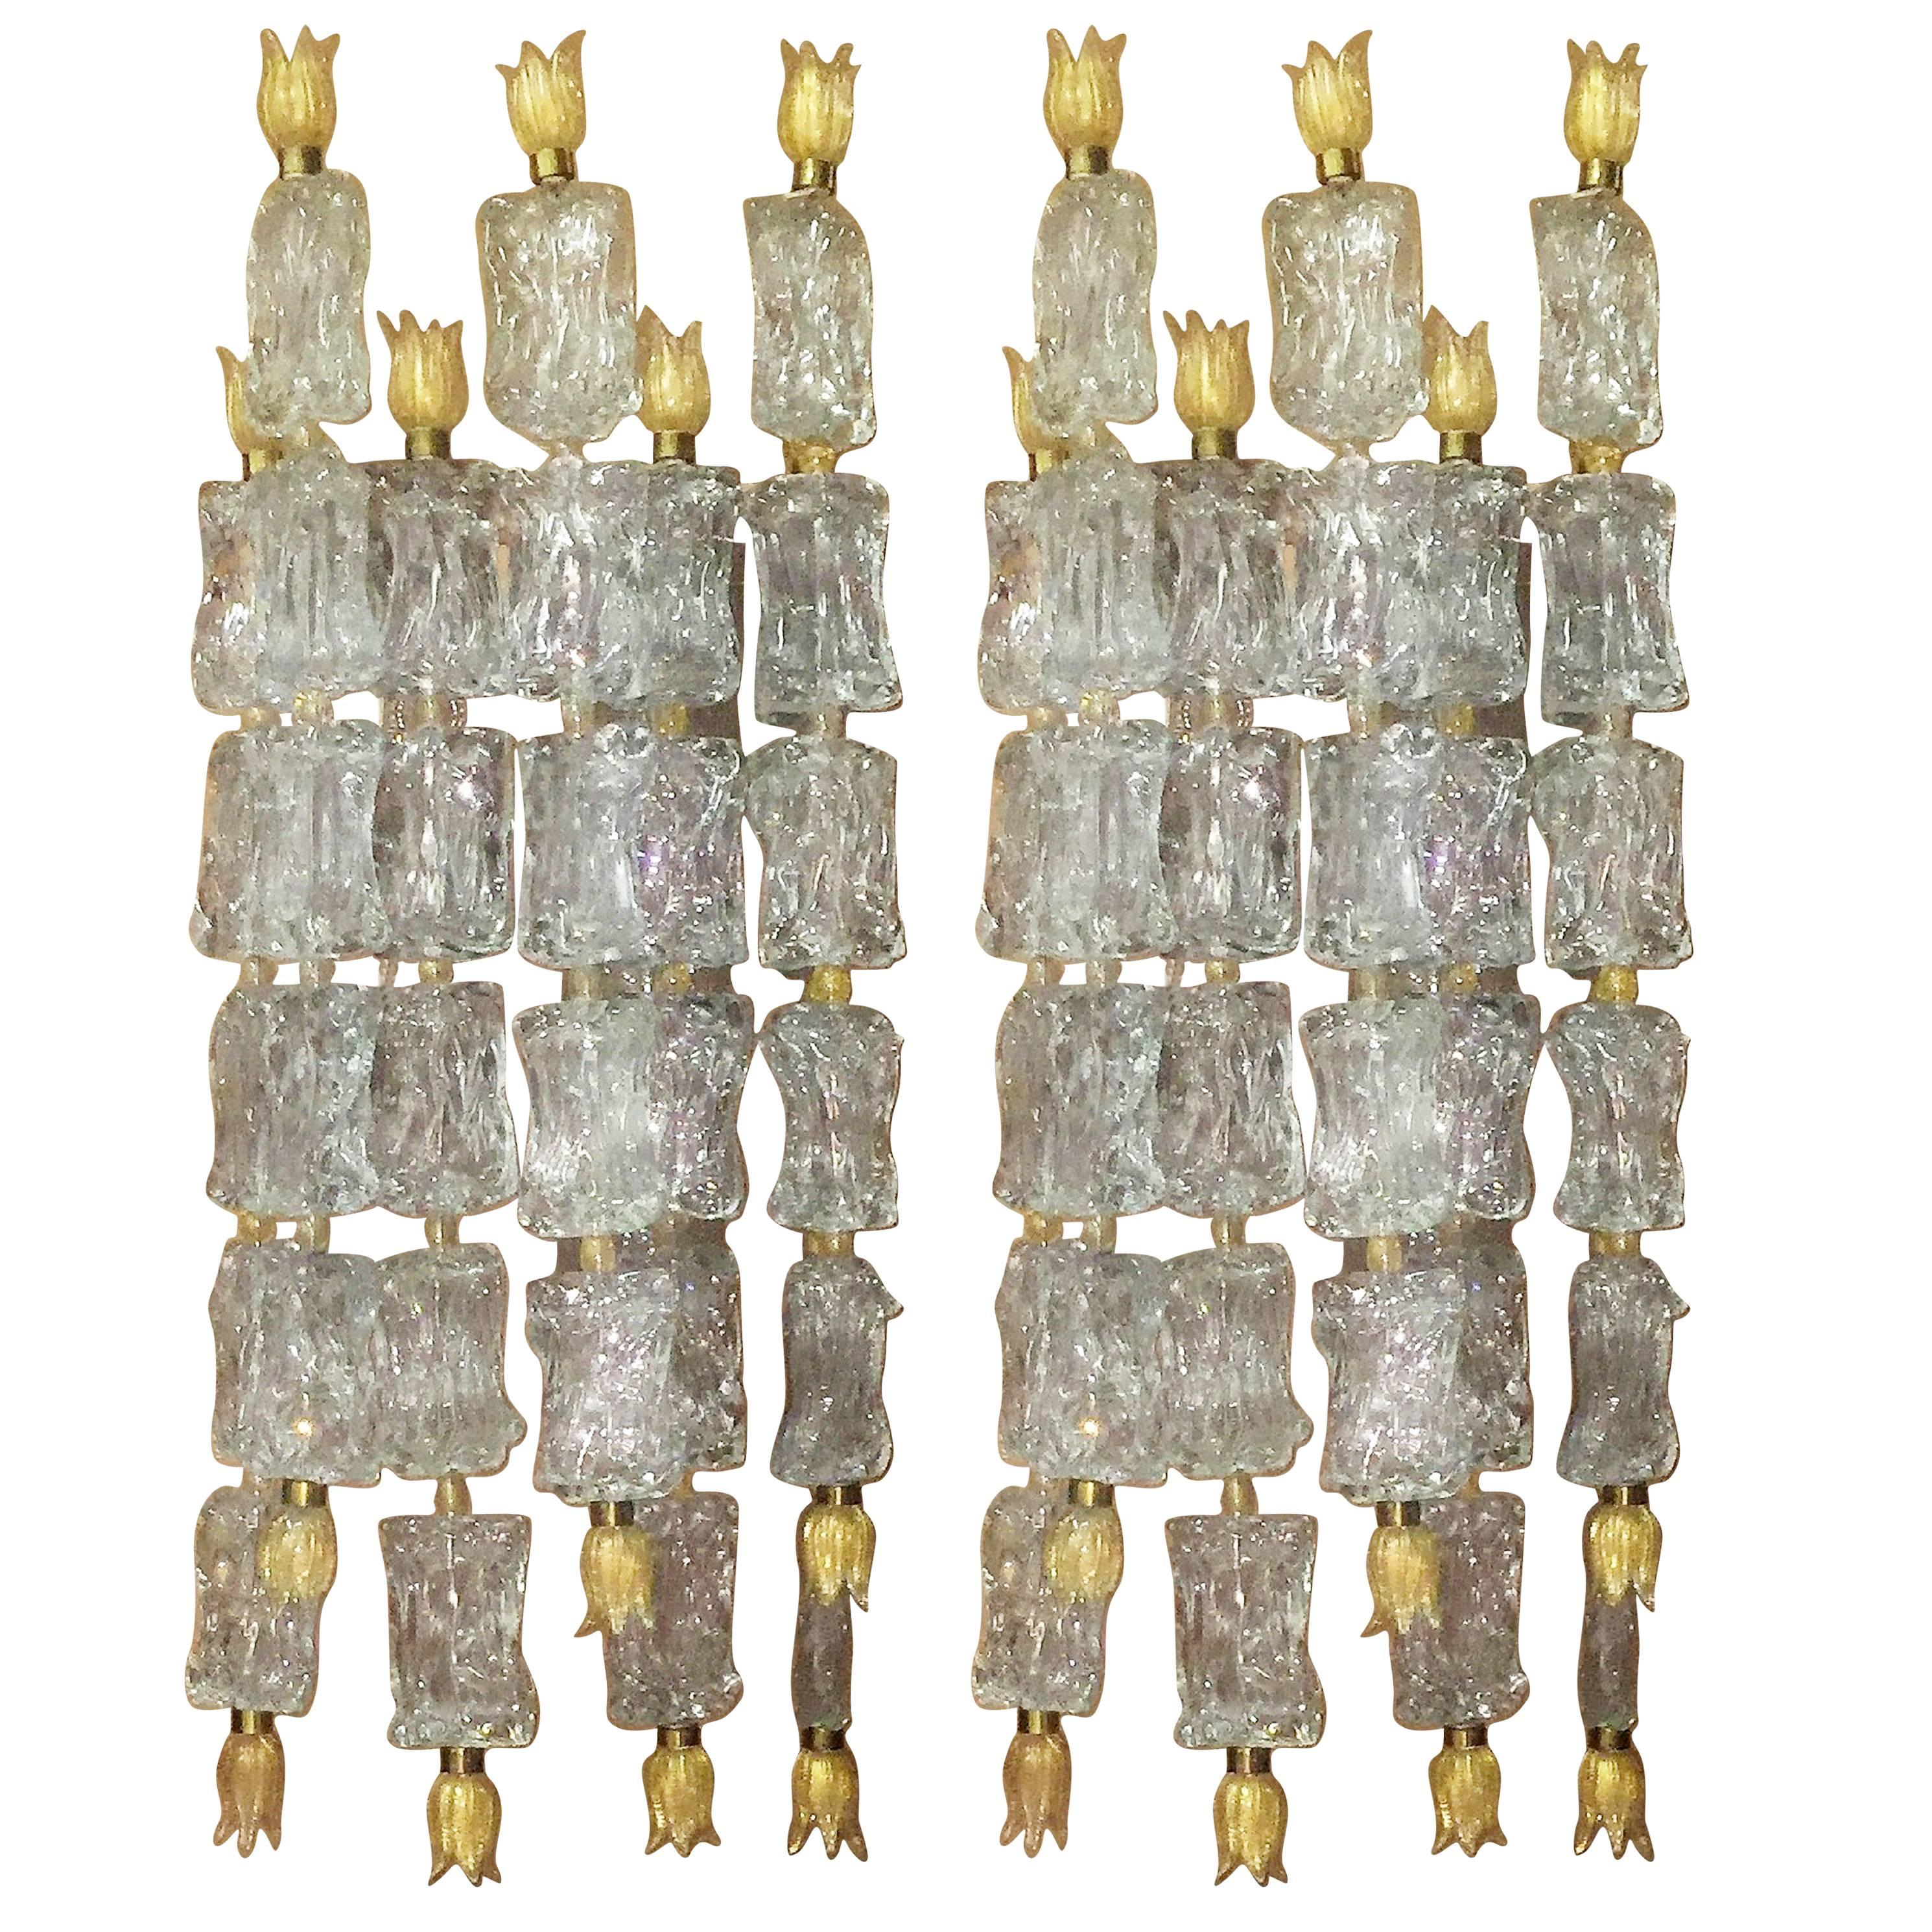 Pair of Monumental Wall Sconces by Barovier Toso, circa 1950s